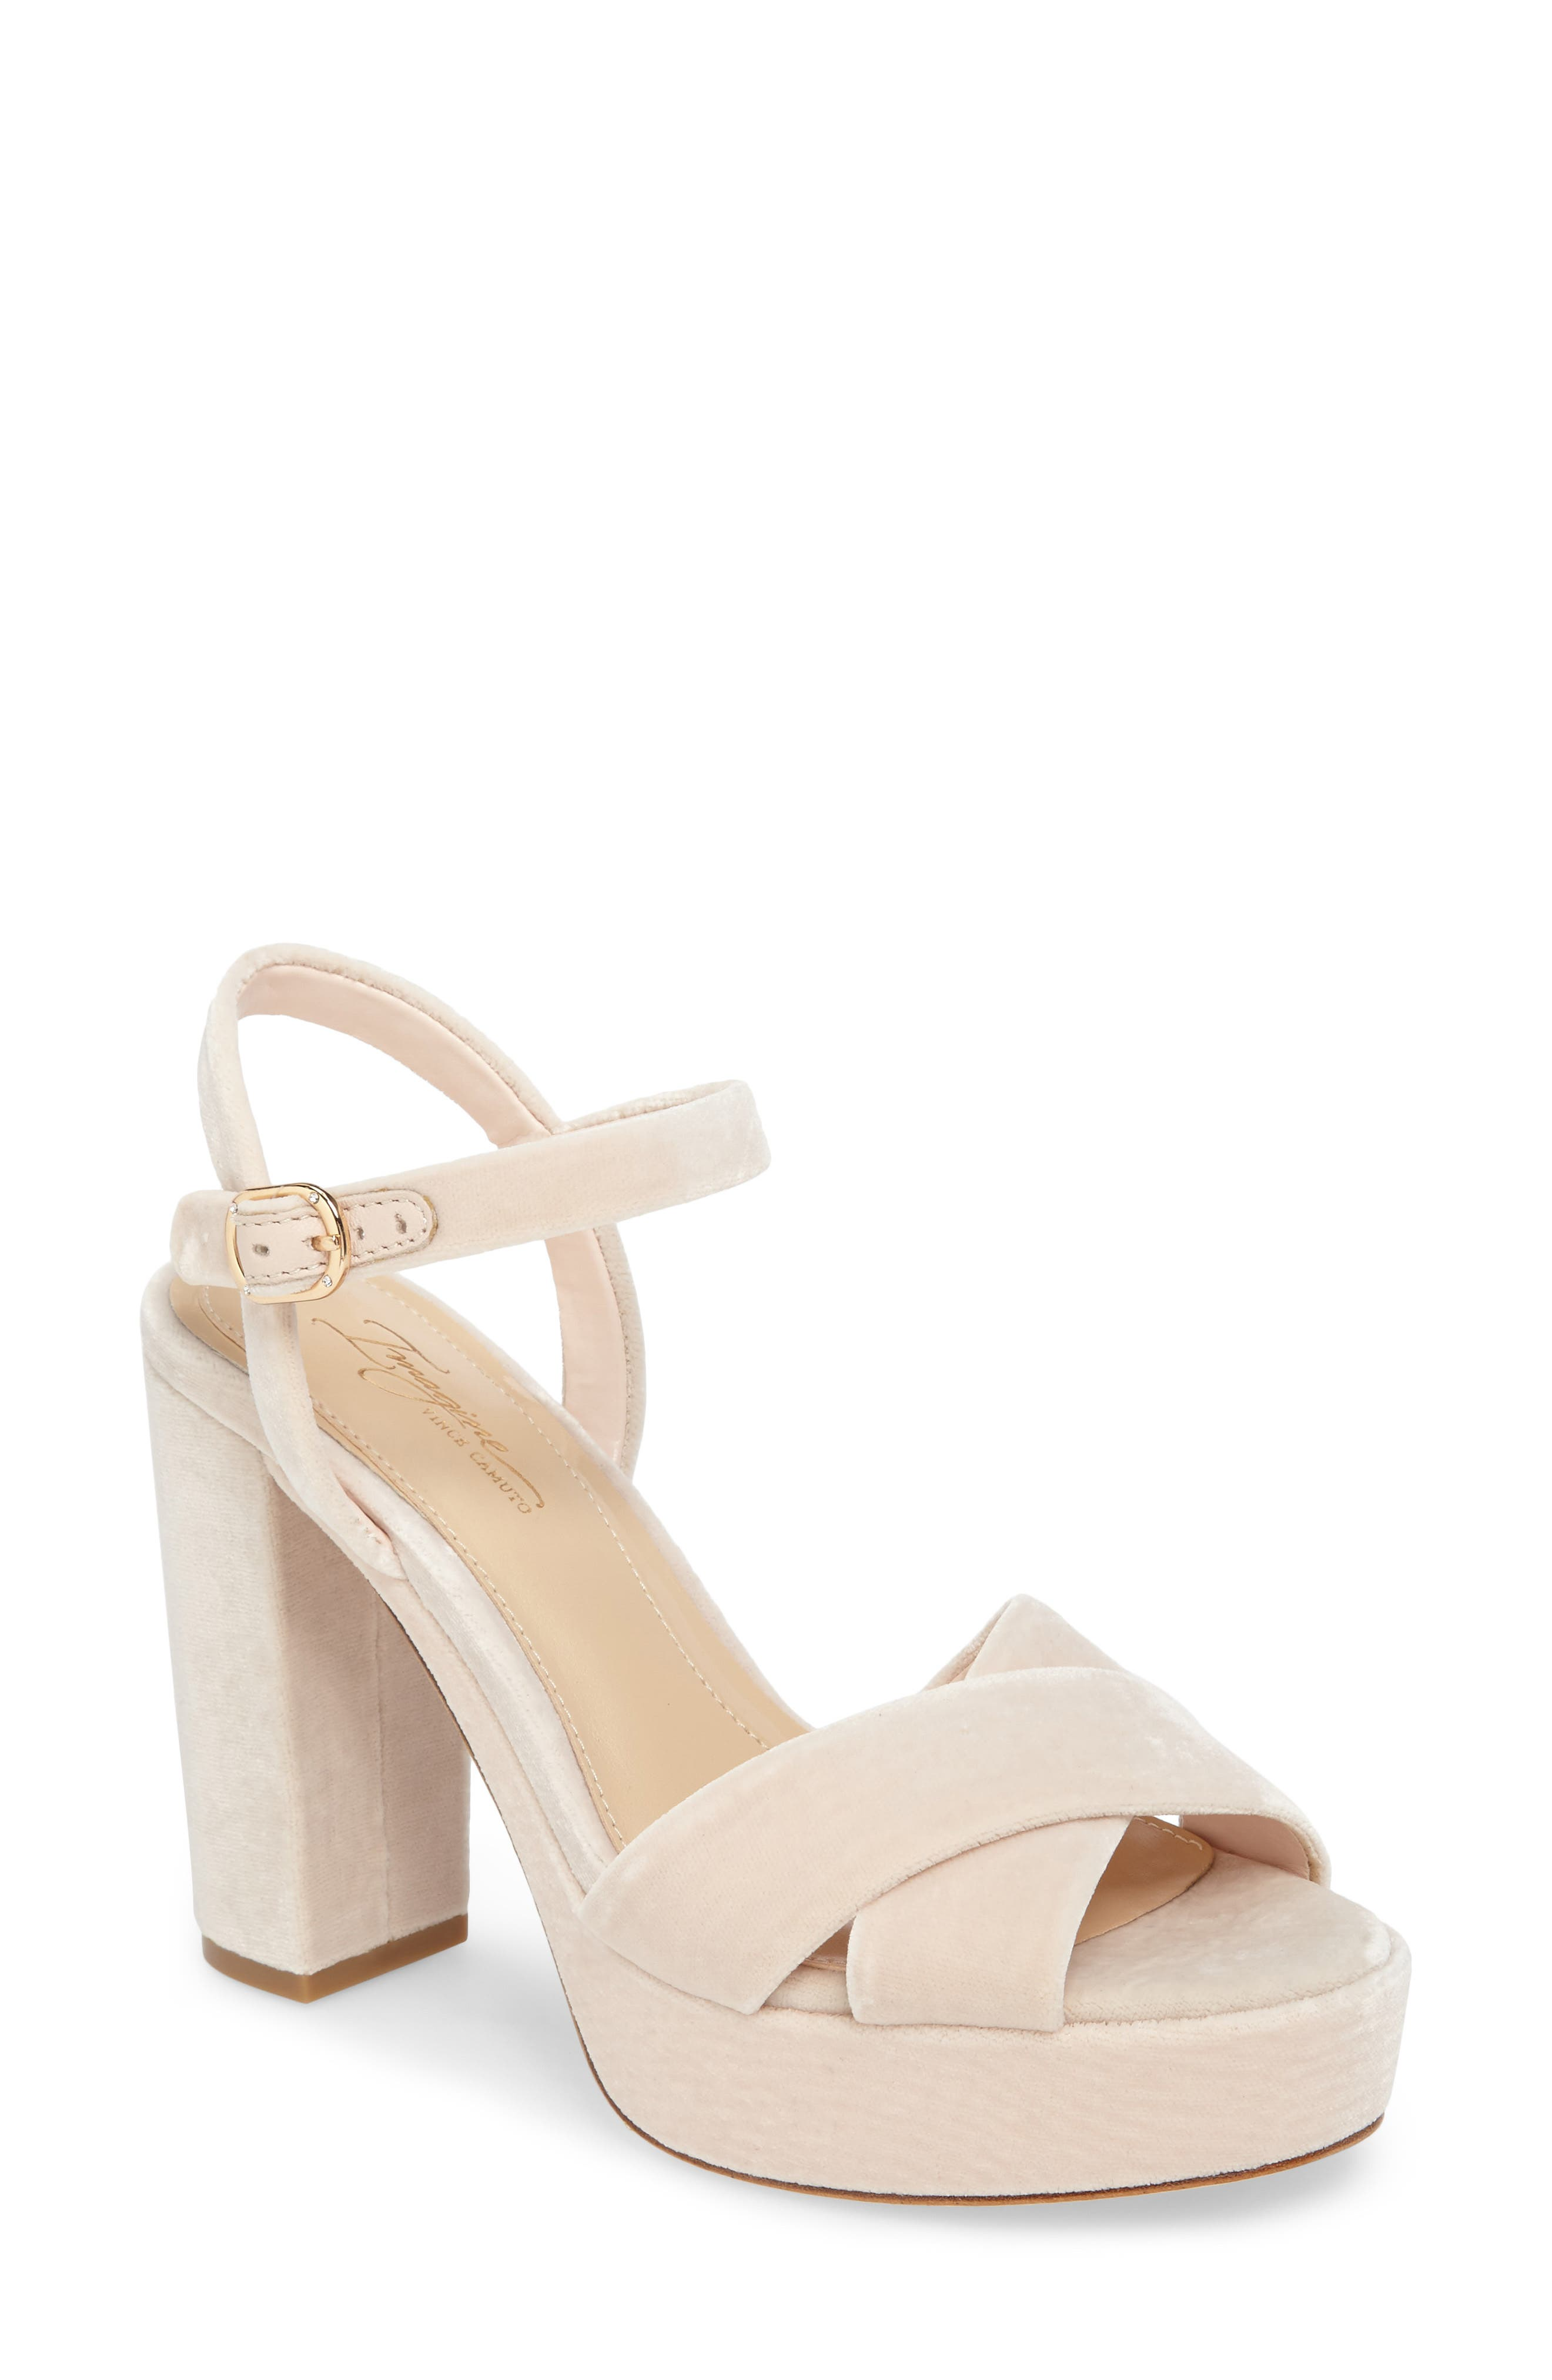 Imagine by Vince Camuto 'Valora' Platform Sandal (Women)